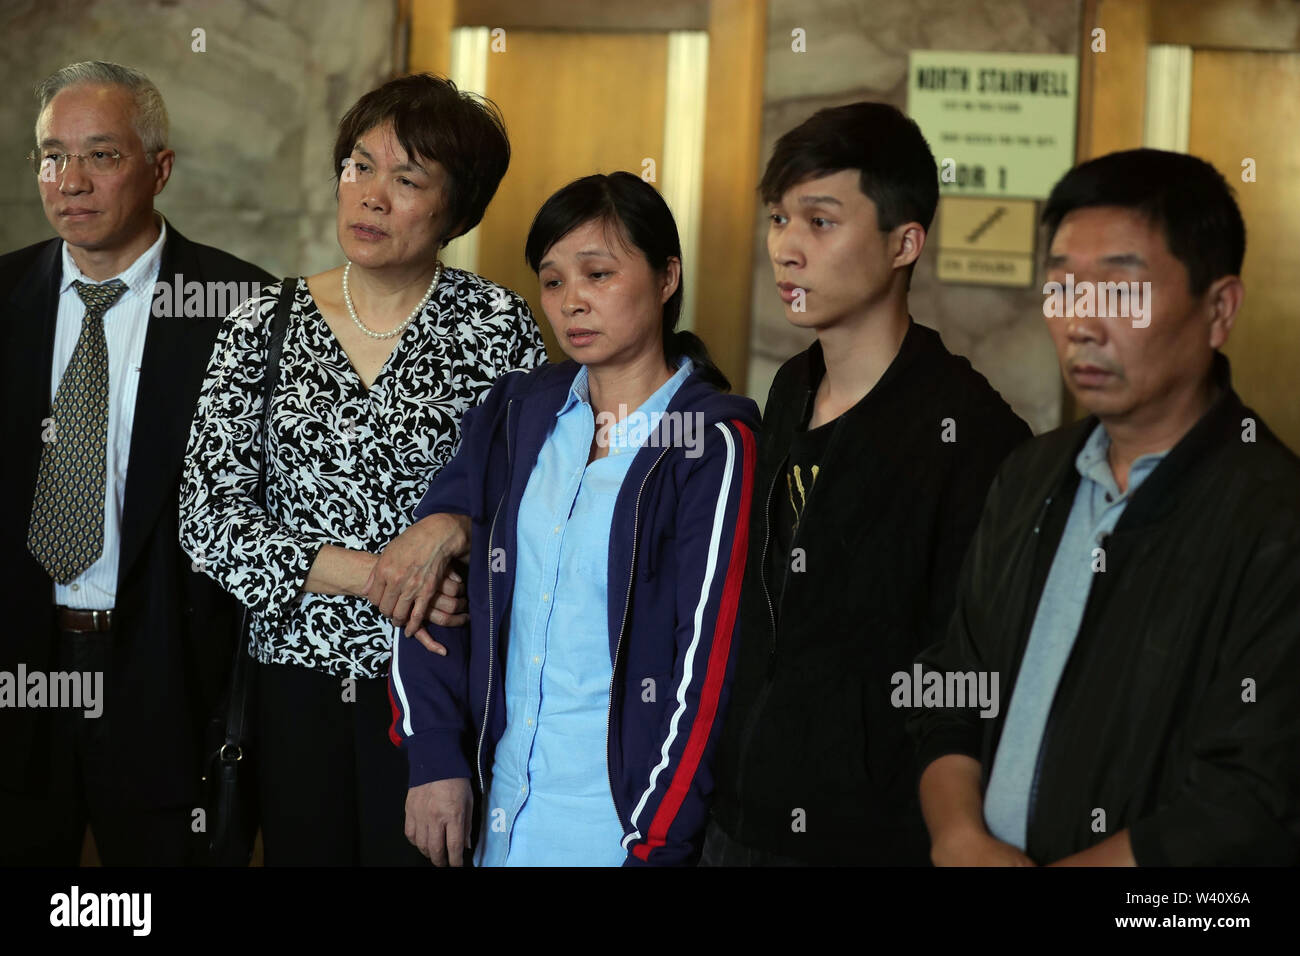 Peoria, USA. 18th July, 2019. Zhang Yingying's mother (C) and father (1st R) attend a press conference after sentencing in Peoria, Illinois, the United States, July 18, 2019. Brendt Christensen, the kidnapper and killer of Chinese scholar Zhang Yingying in 2017, was sentenced on Thursday to life imprisonment without possibility of release, Judge James Shadid announced the verdict in a federal court of Peoria in the U.S. state of Illinois, after the jury failed to reach a unanimous decision on whether he should be sentenced to death or life in prison. Credit: Wang Ping/Xinhua/Alamy Live News - Stock Image